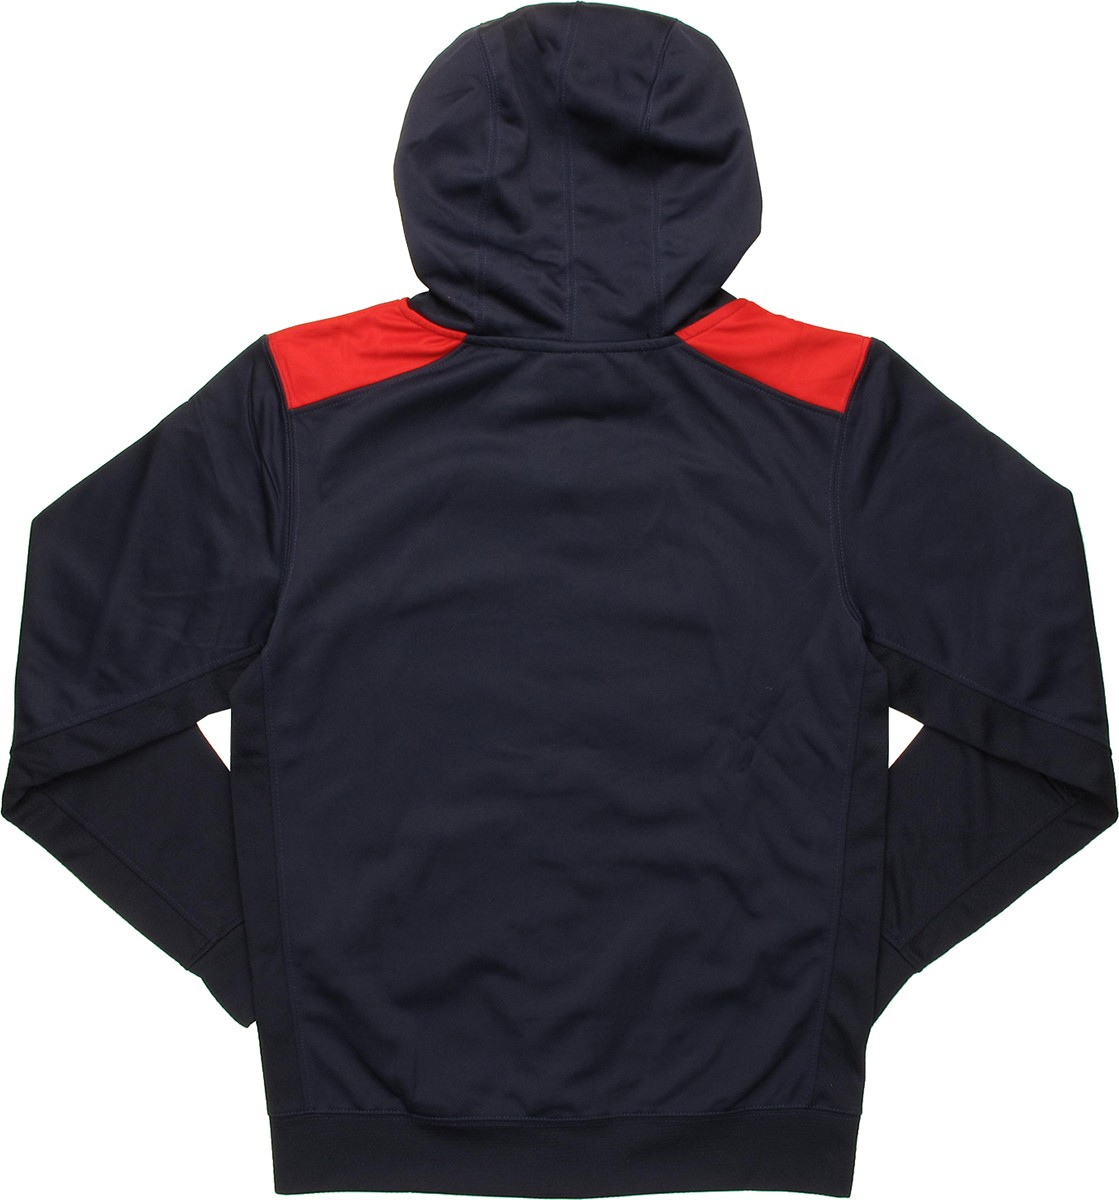 Captain america classic shield polyester hoodie